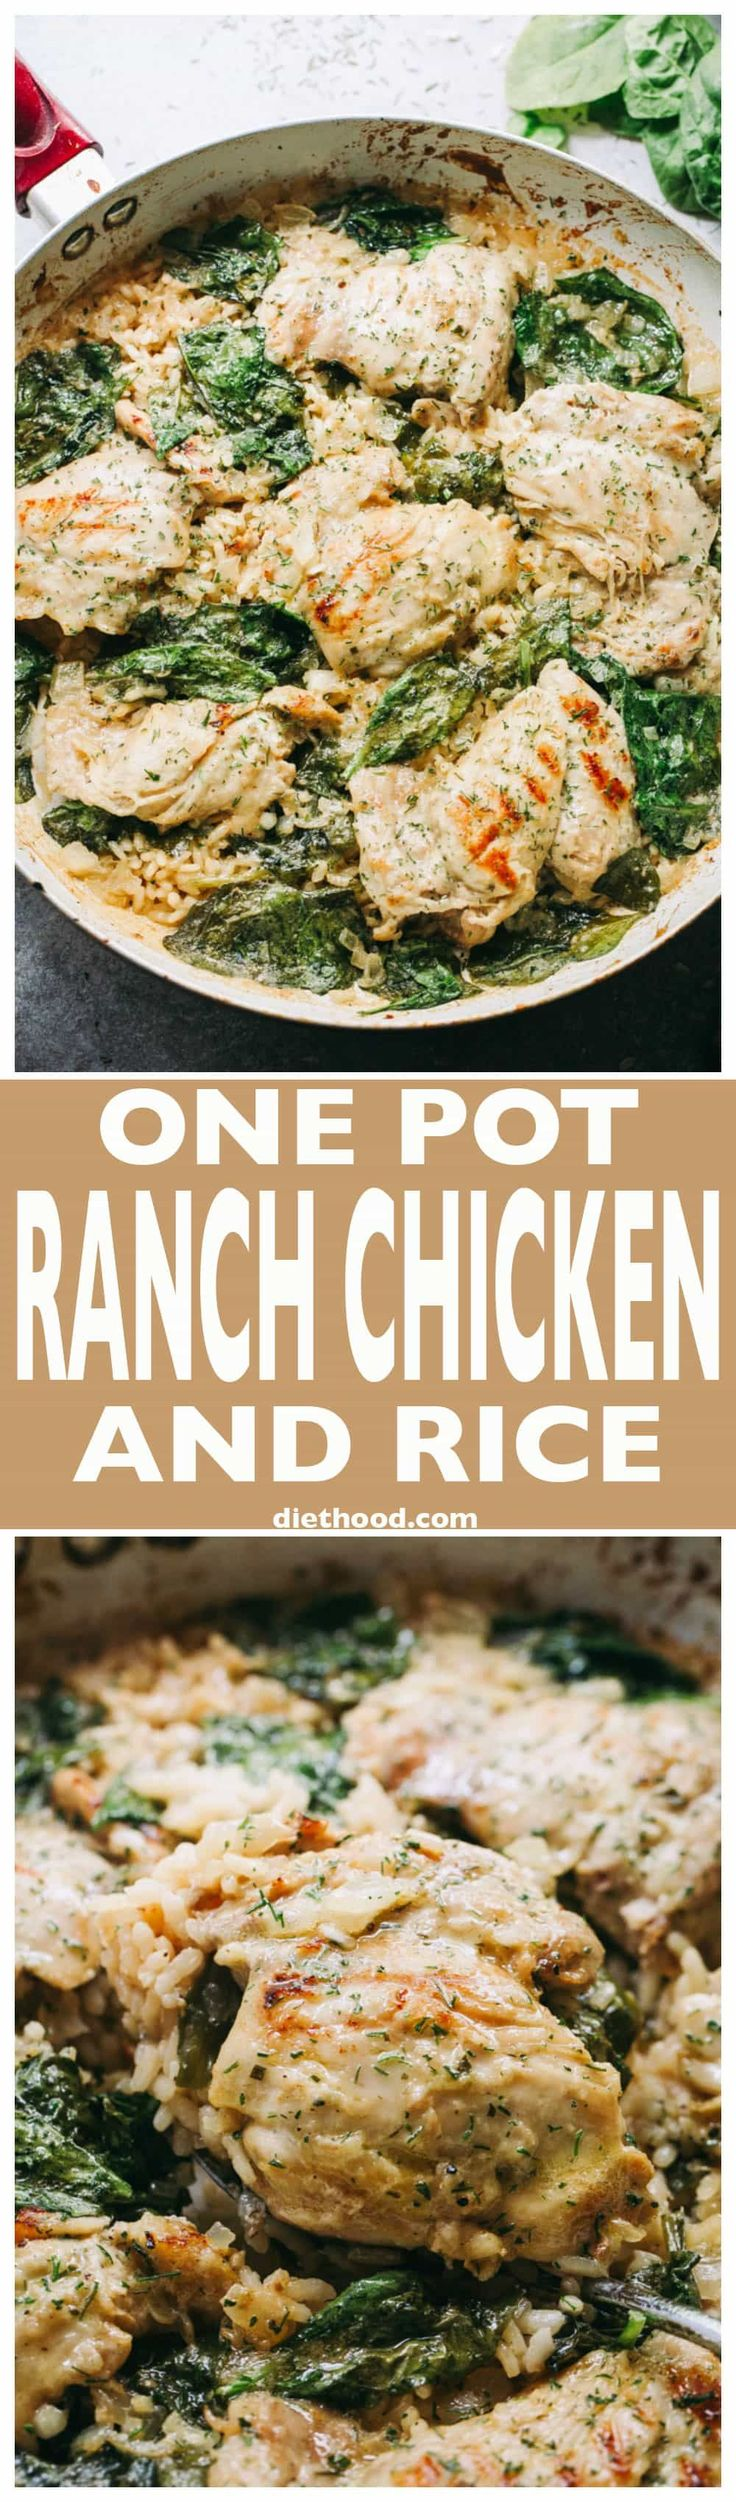 One Pot Ranch Chicken and Rice - Easy, quick, and delicious ranch flavored chicken- use breasts